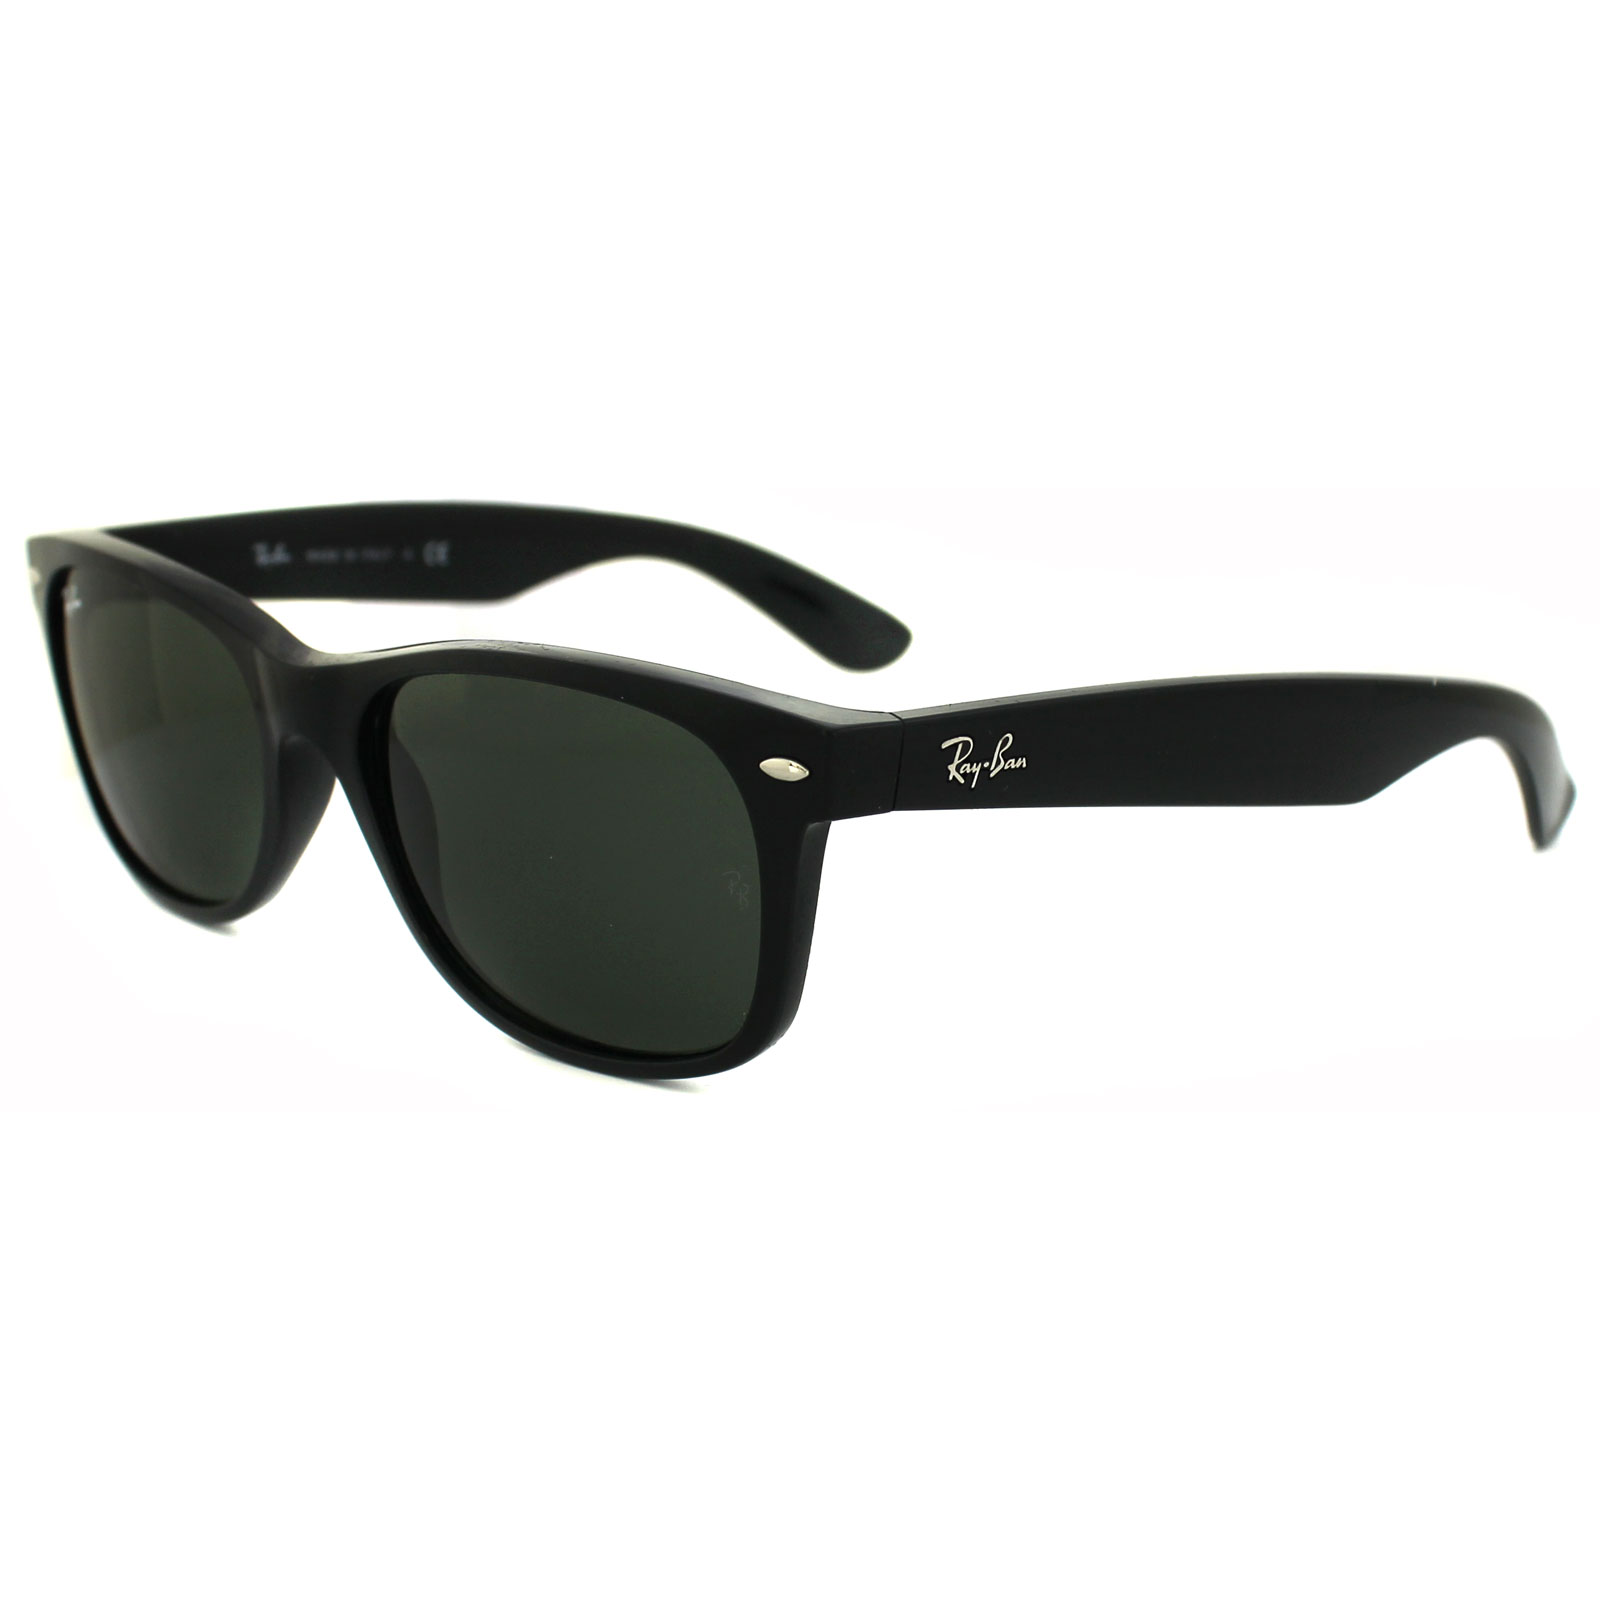 5bf2ddad8b Cheap Ray-Ban New Wayfarer 2132 Sunglasses - Discounted Sunglasses